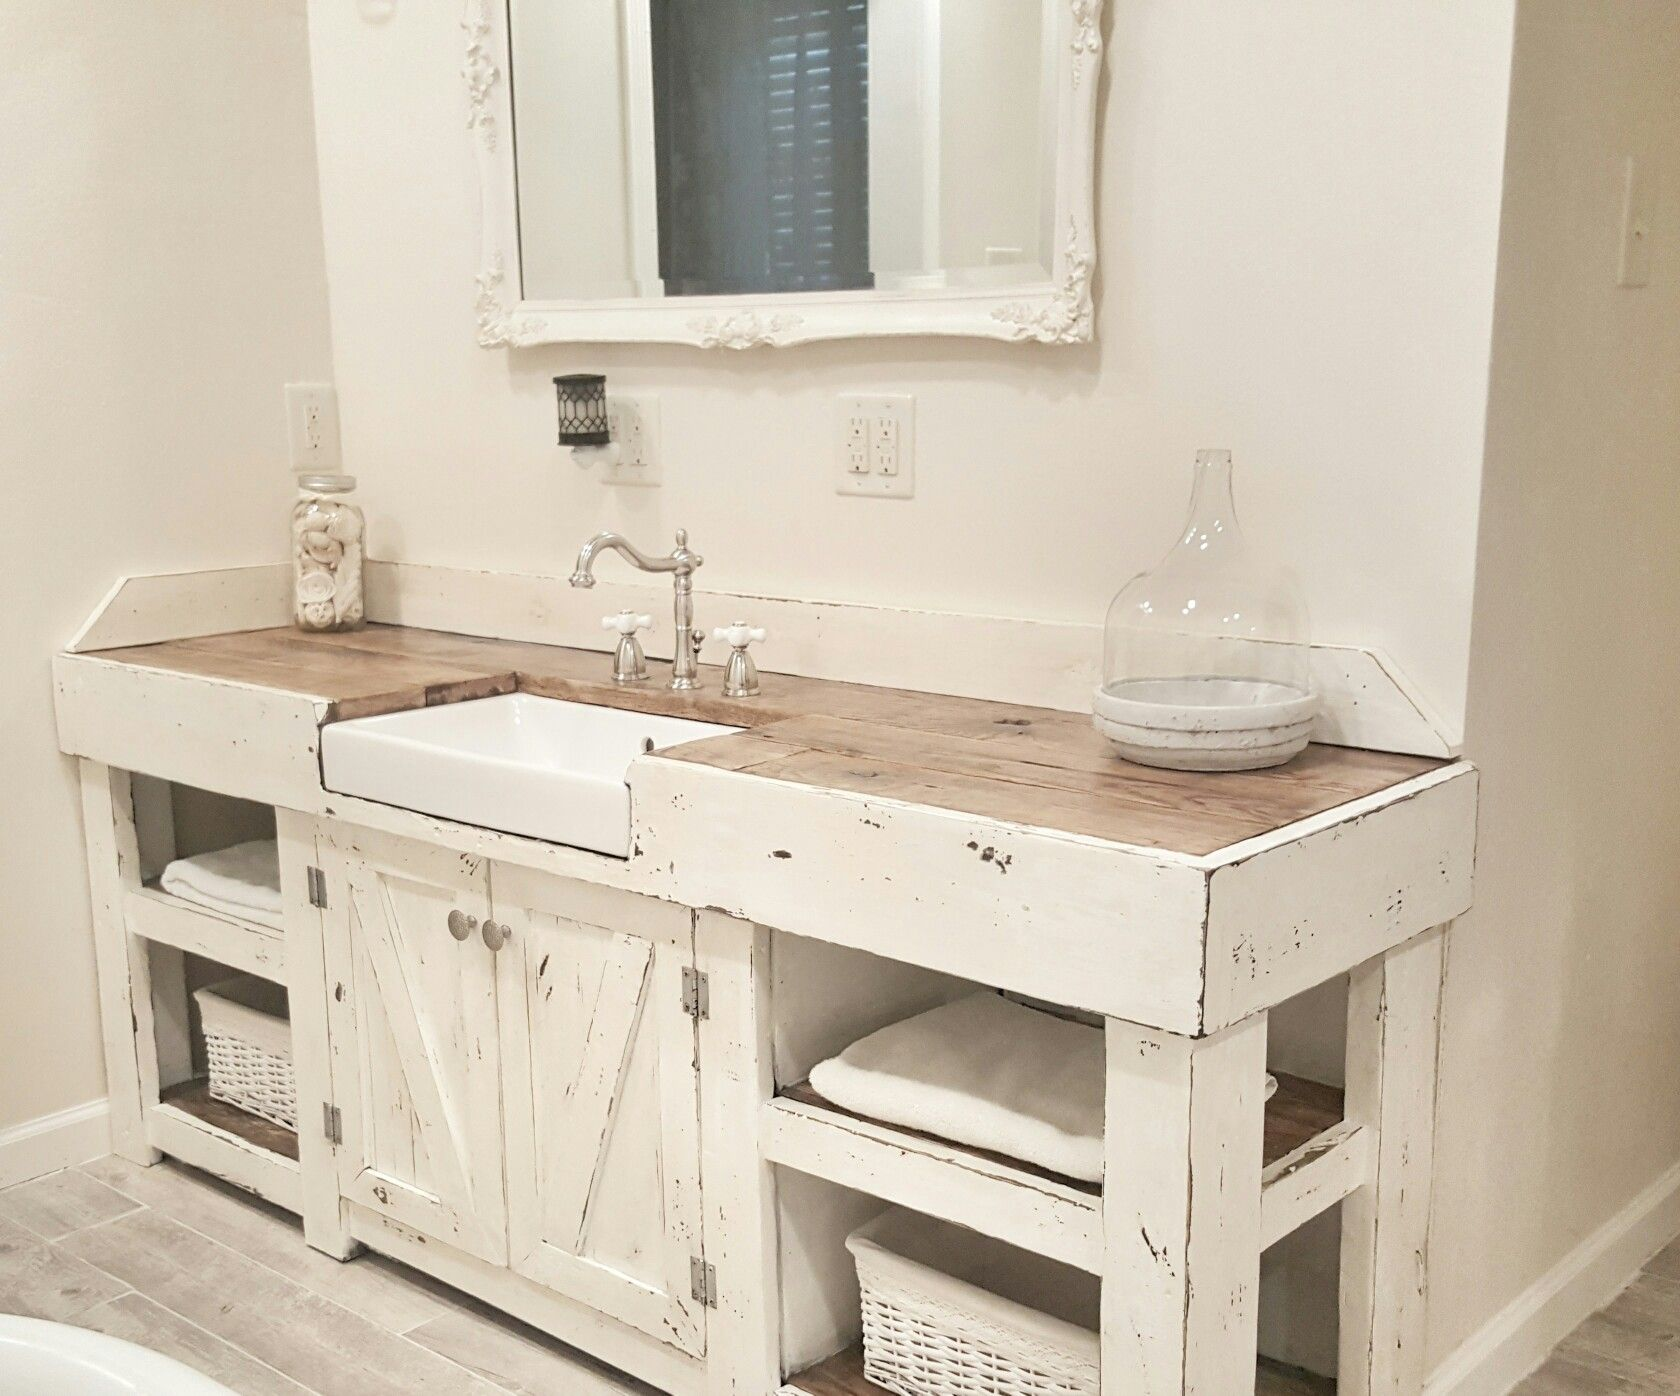 cottage bathroom farmhouse bathroom farmhouse vanity farmhouse sink - Farmhouse Bathroom Vanity